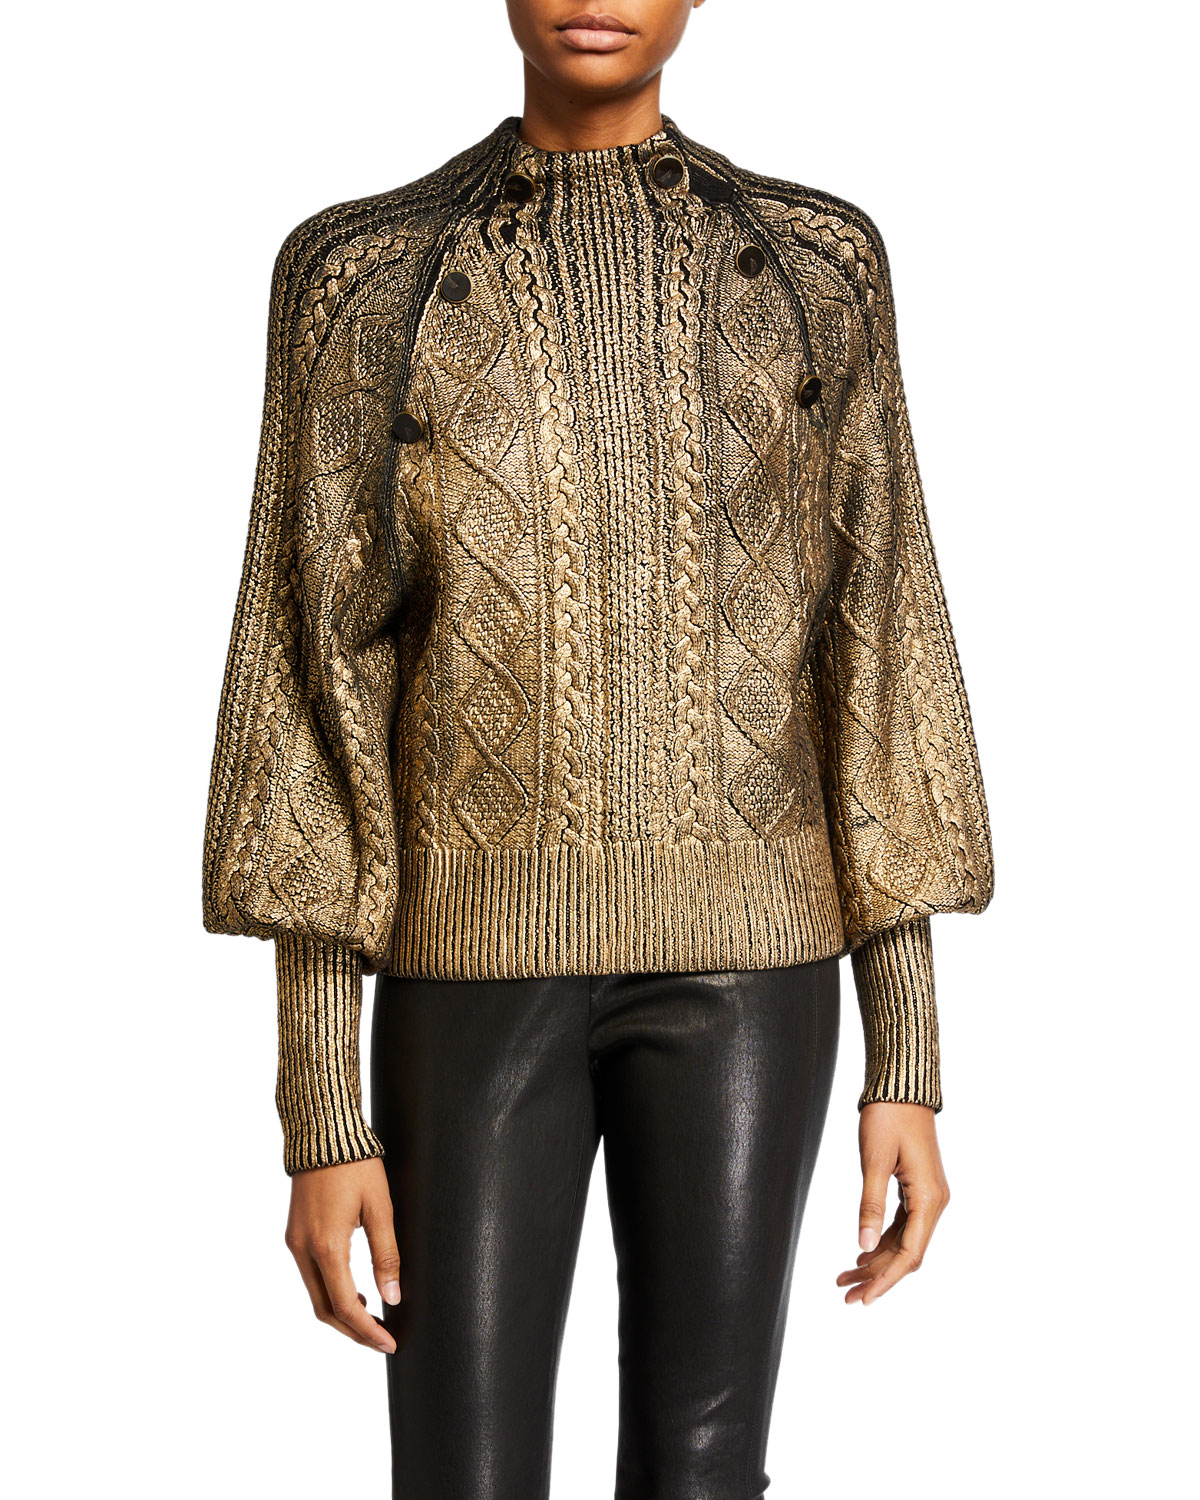 Grady Bishop Sleeve Metallic Sweater by Veronica Beard